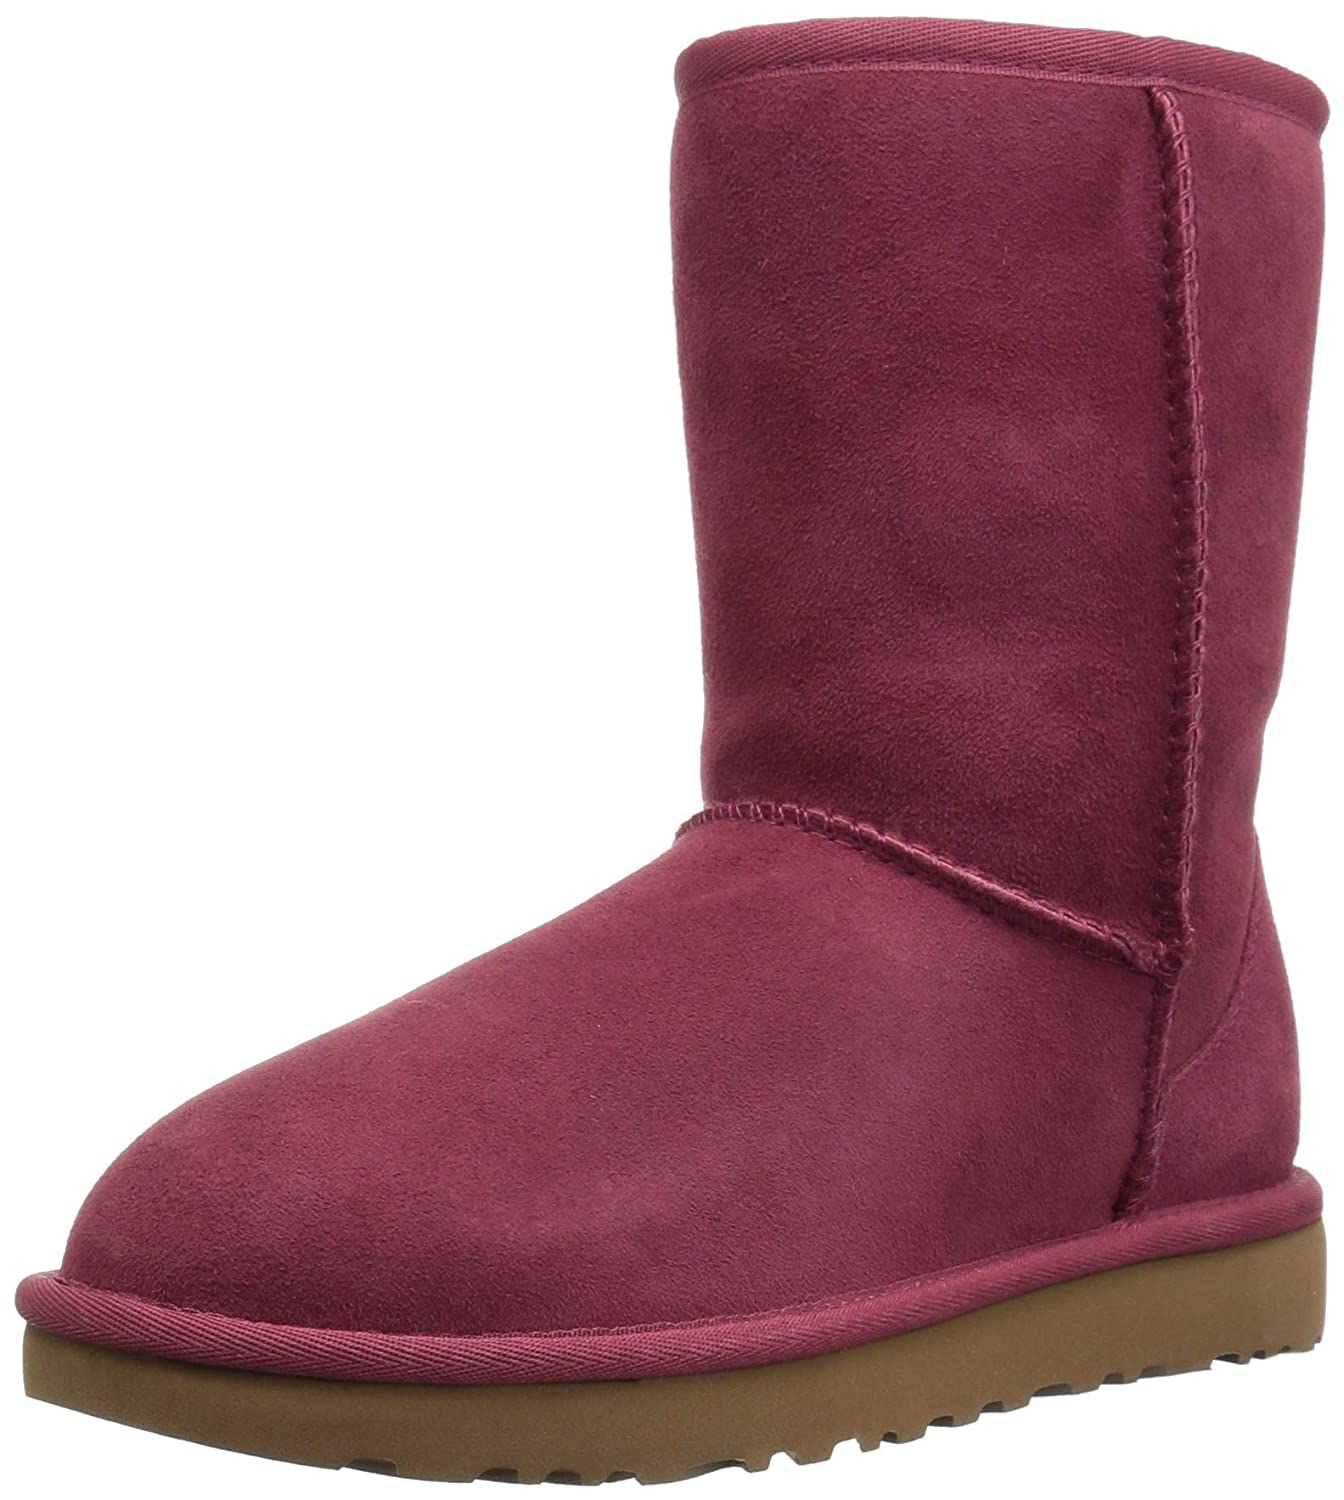 d7d8bb1786d UGG Australia Women's Classic Short Ii Fashion Boot